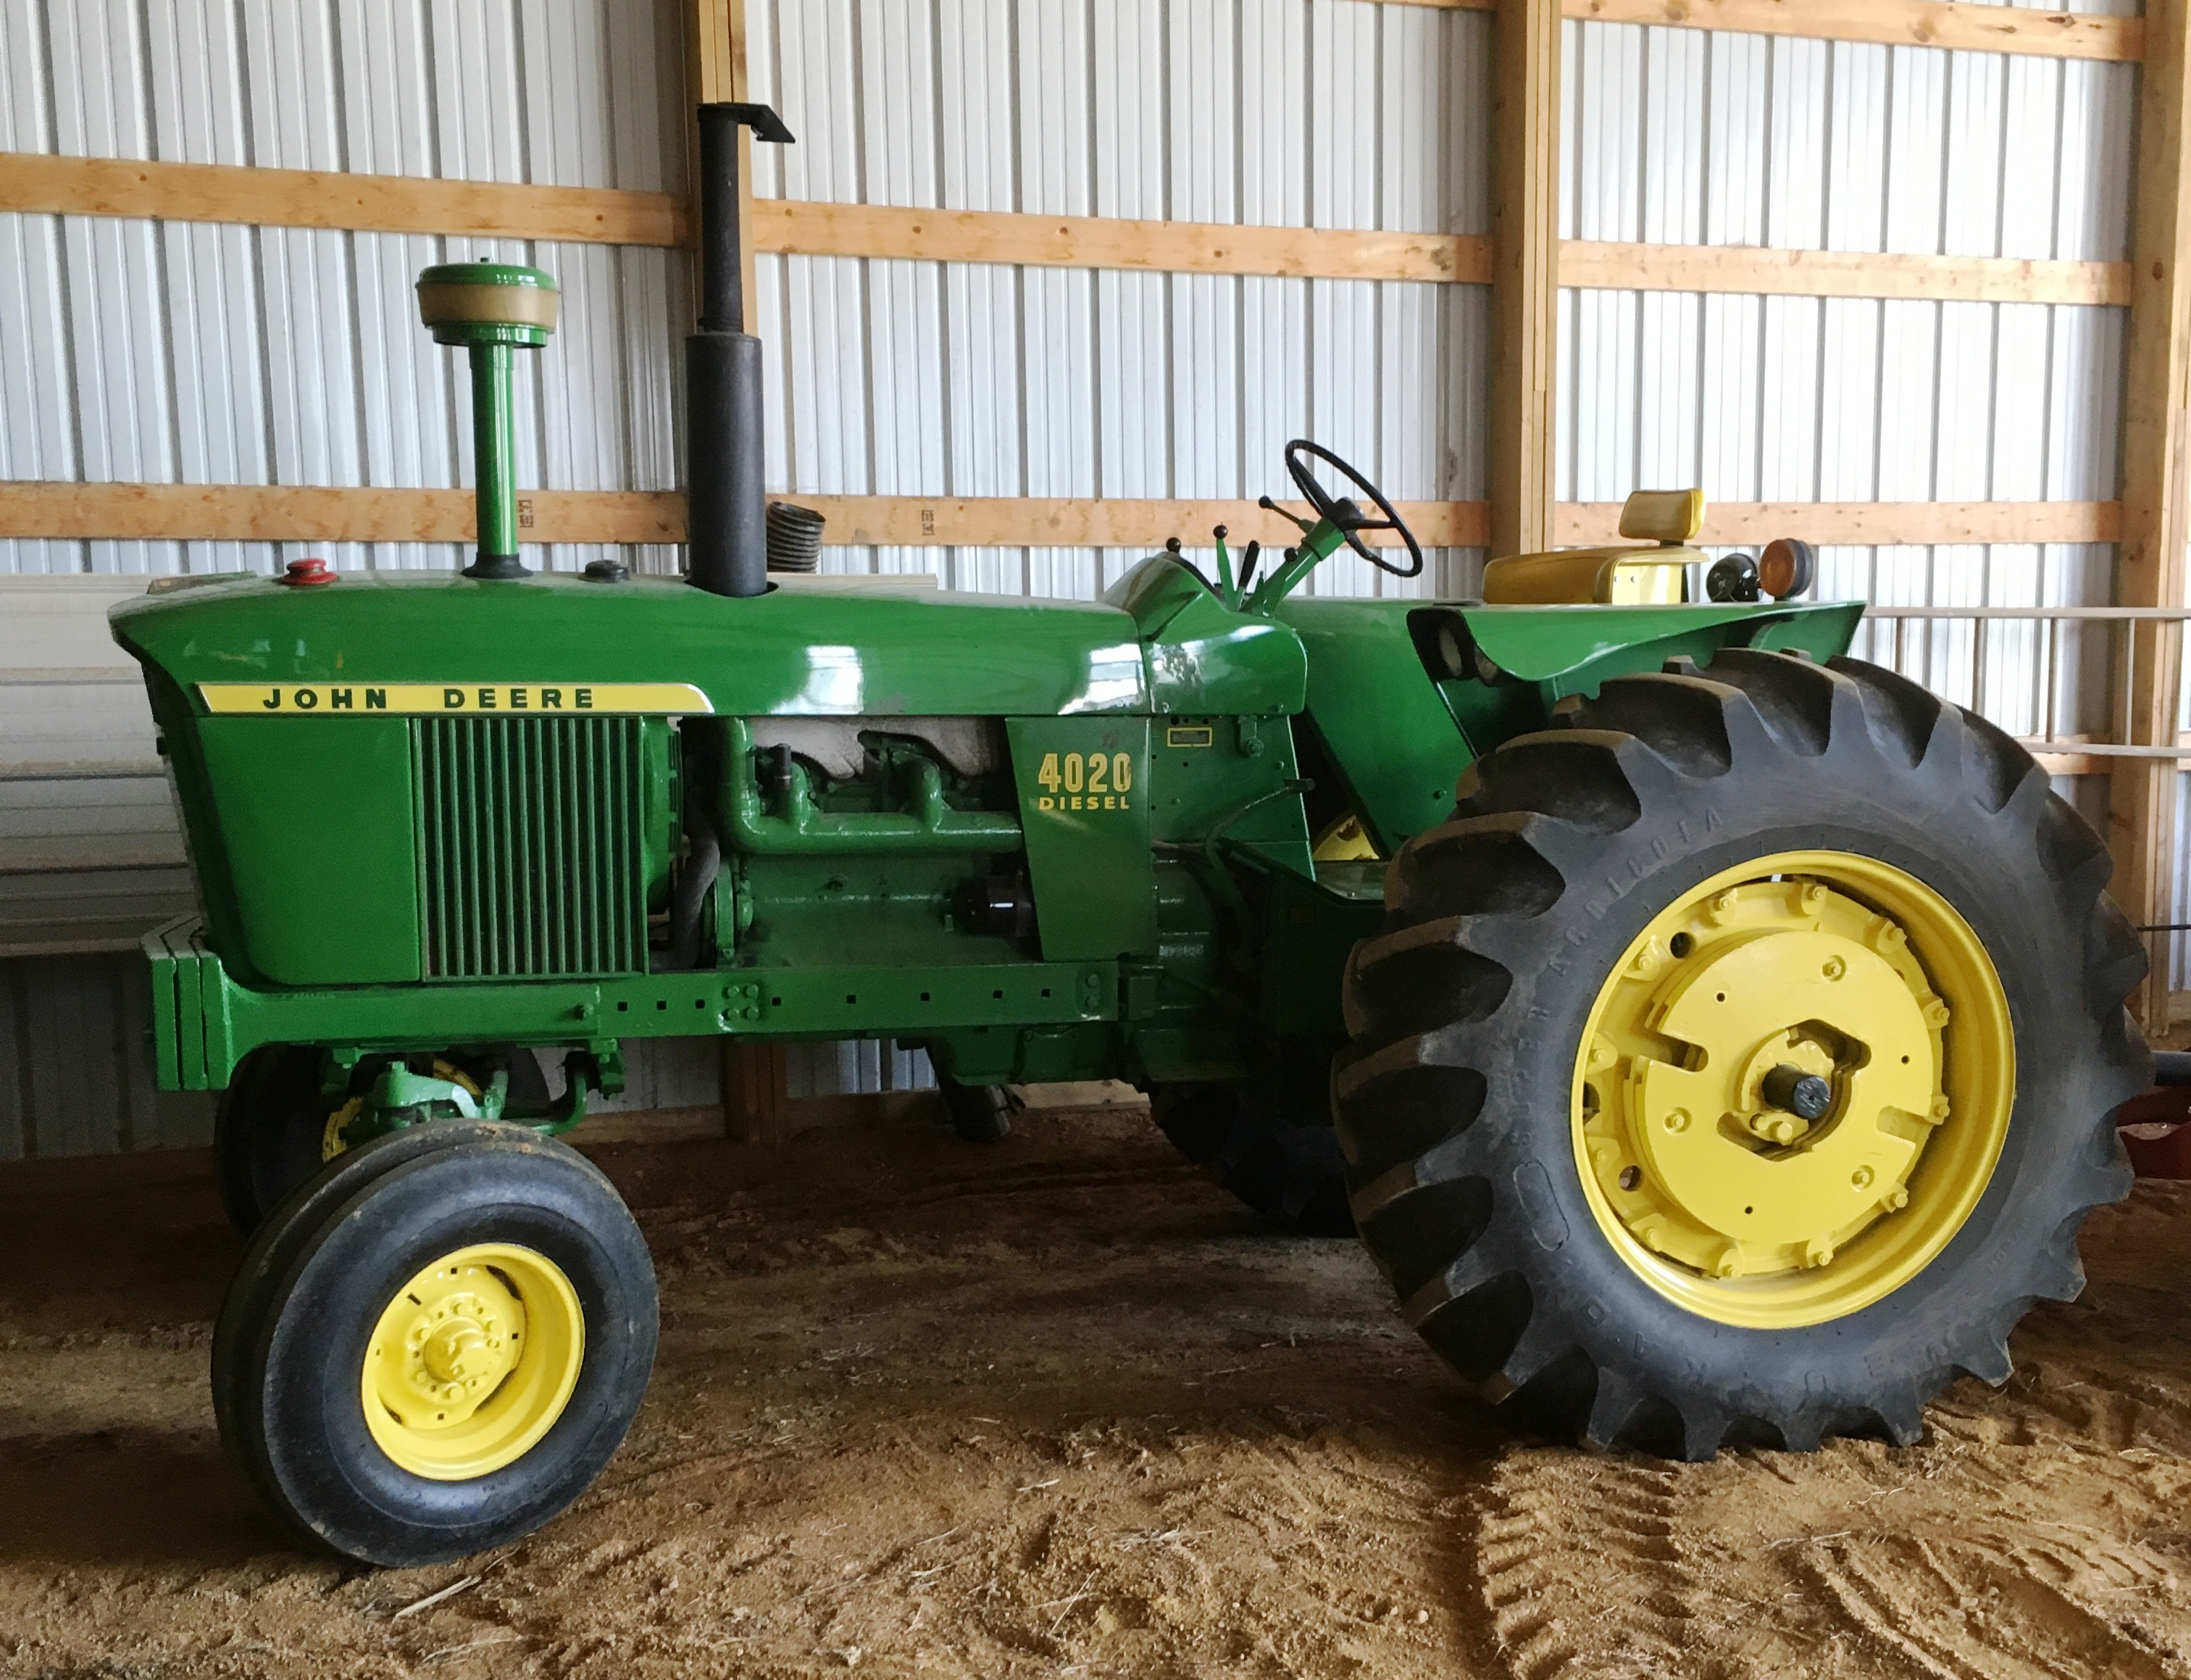 4020 tractor